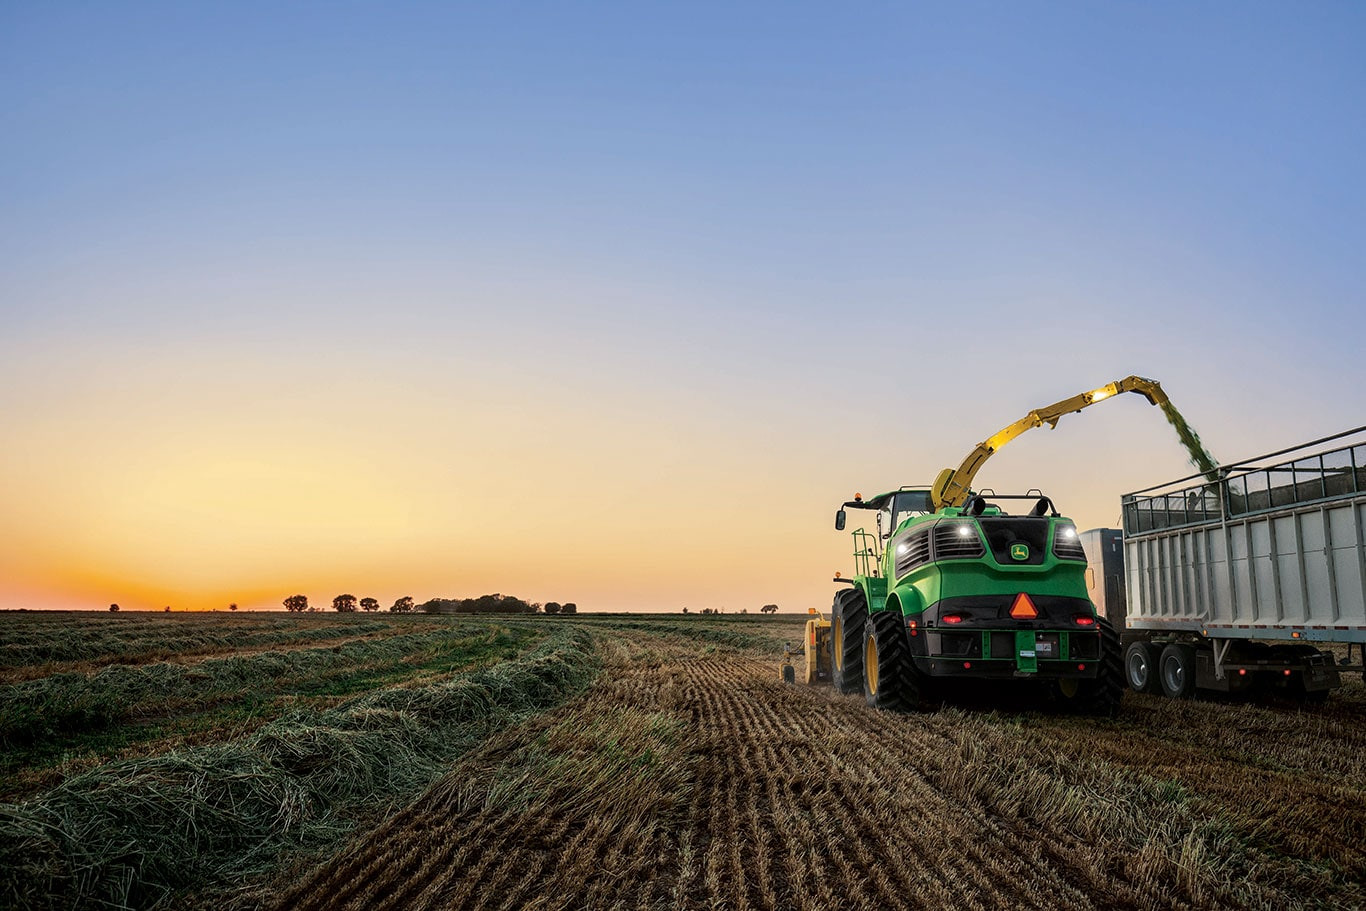 John Deere introduces new forage harvesters